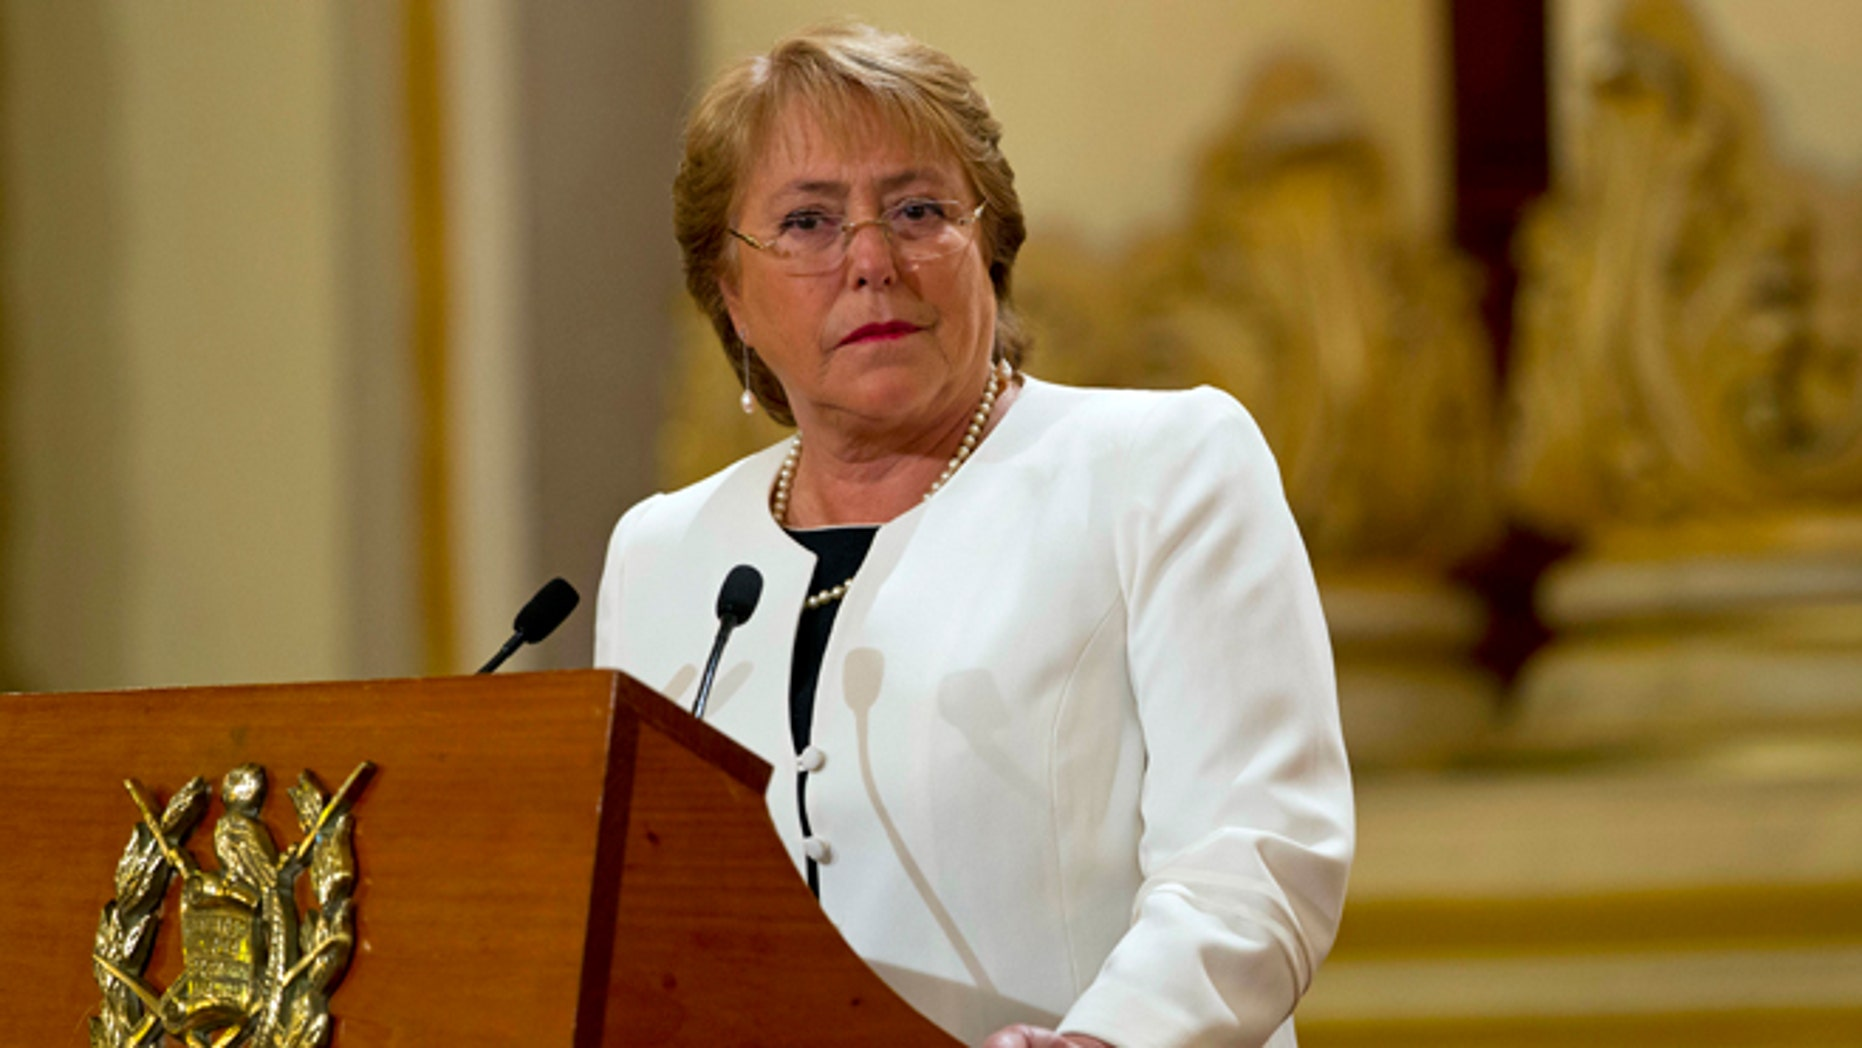 FILE - In this Friday, Jan. 30, 2015, file photo, Chile's President Michelle Bachelet listens to Guatemala's President Otto Perez Molina during their joint press conference at the National Palace in Guatemala City. President Bachelet has asked on Wednesday, May 6, 2015, for all her Cabinet ministers to submit their resignations. (AP Photo/Moises Castillo, File)